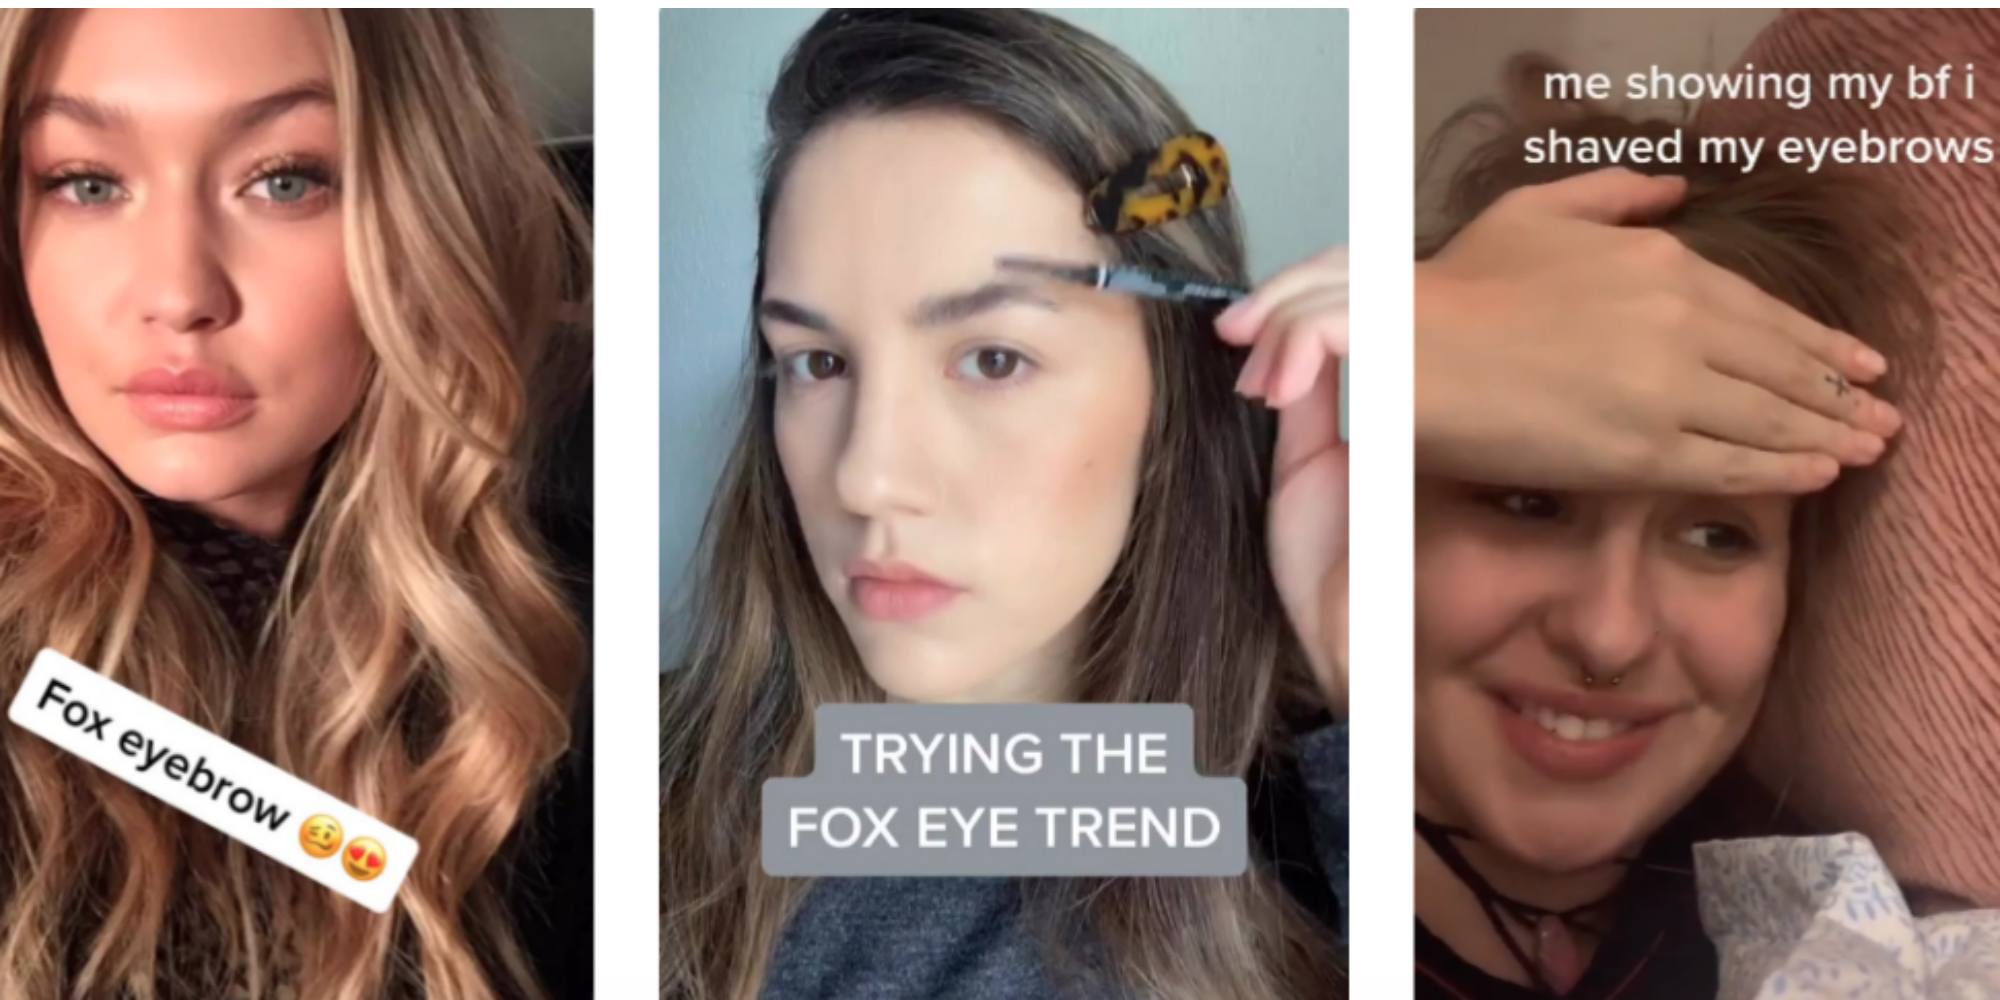 TikTok teens are shaving off their eyebrows to 'look like' Kendall Jenner, Bella Hadid